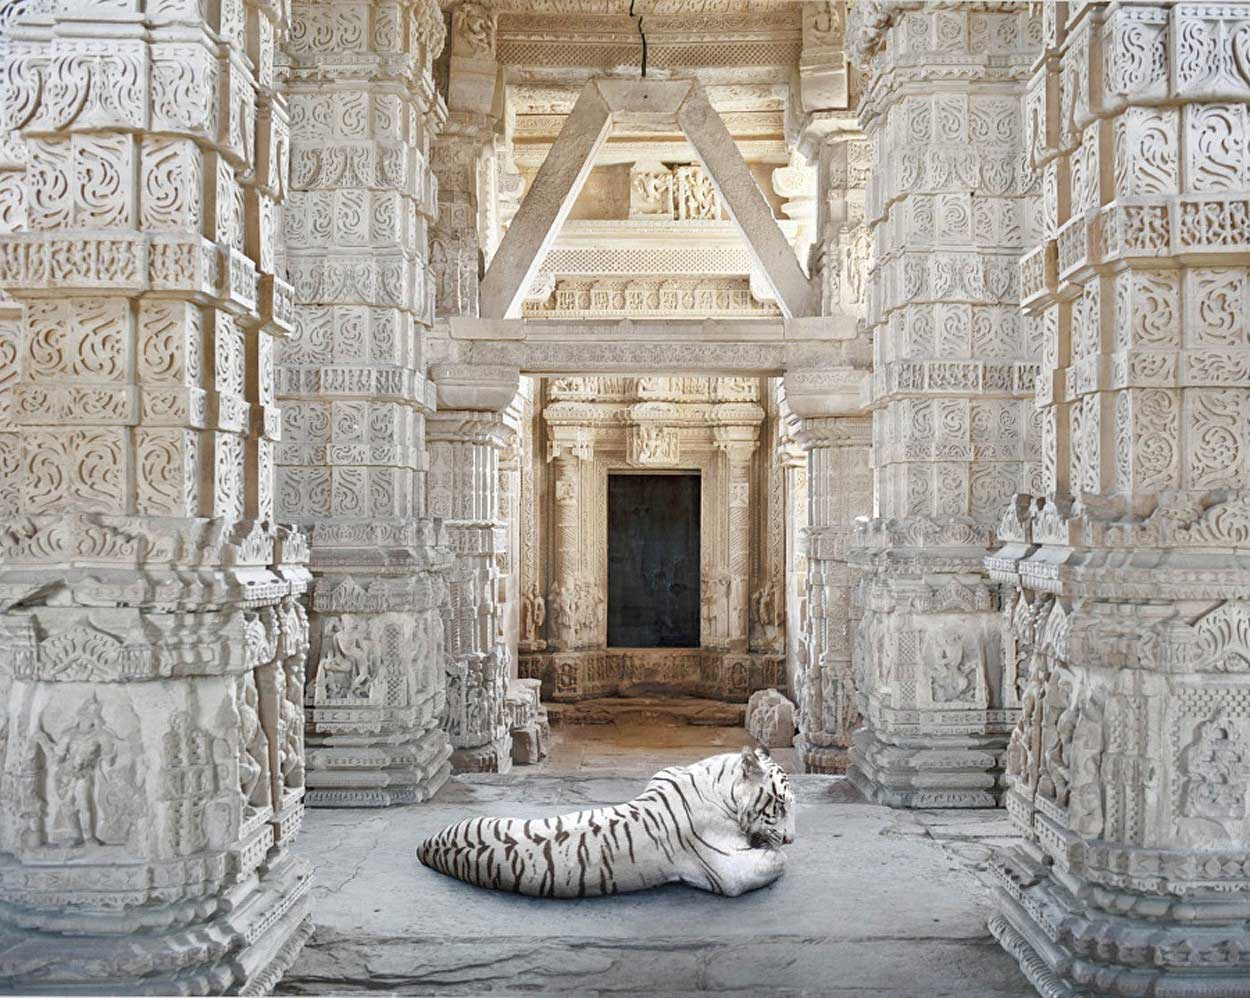 Karen Knorr Photos | Yellowtrace